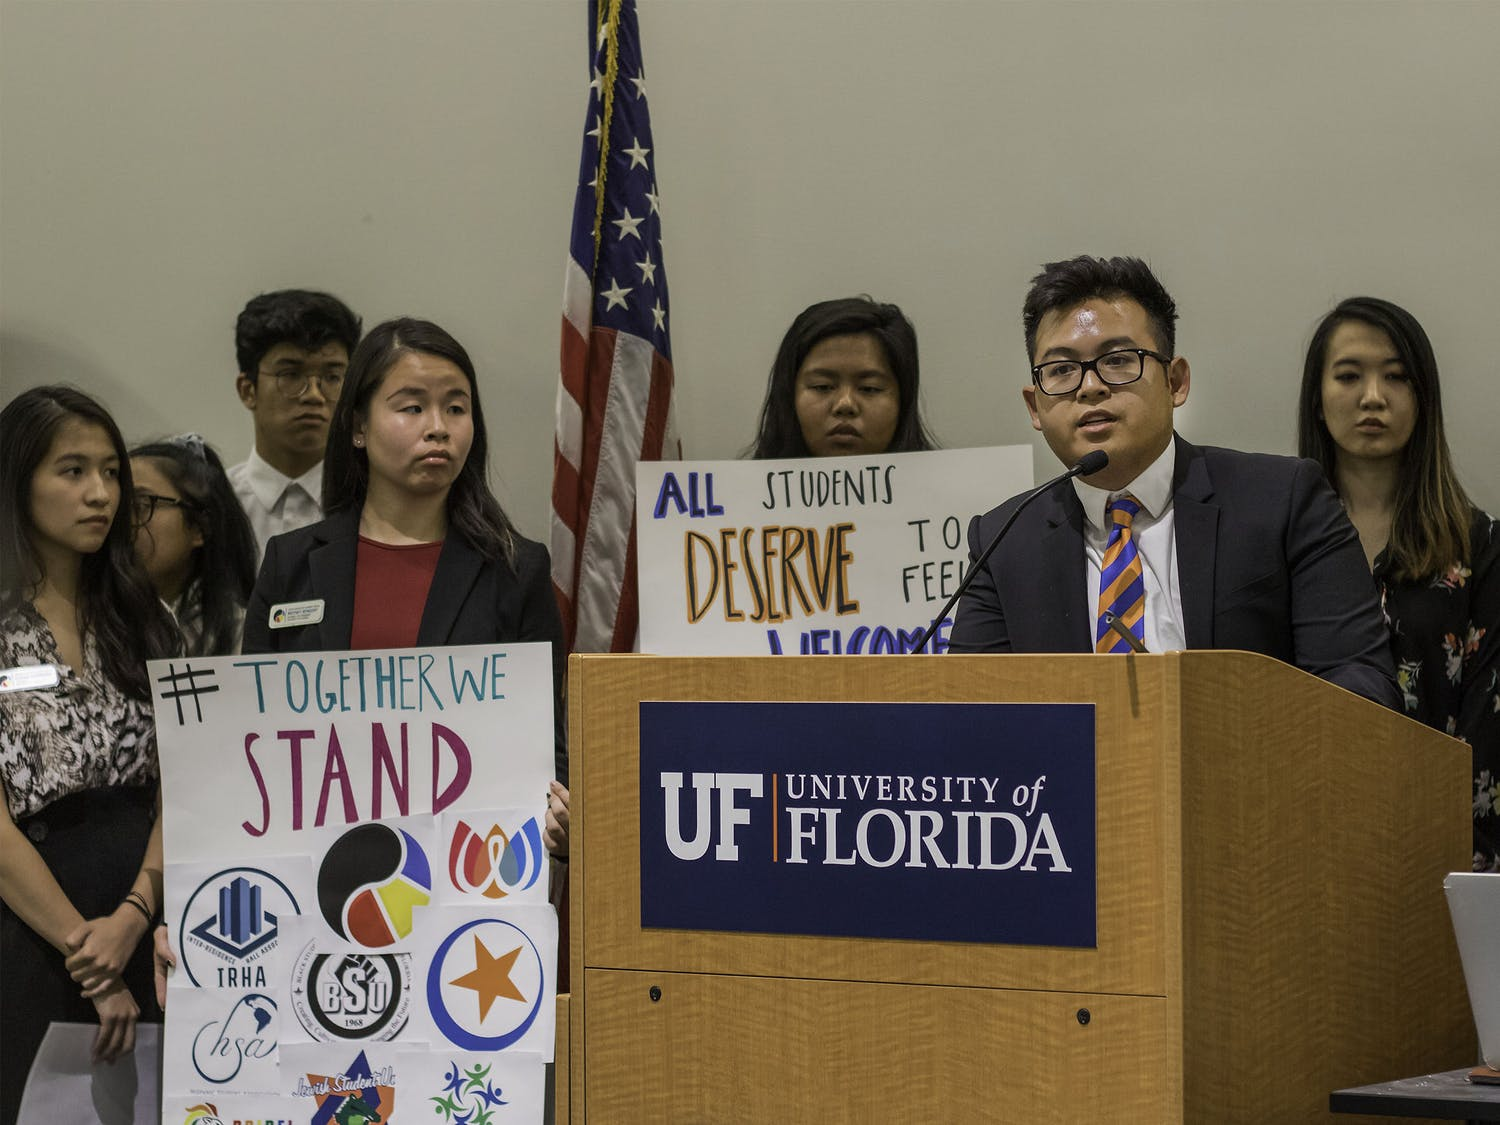 """Kevin Nguyen, president of the Vietnamese Student Organization, speaks during the public comment part of the UF Student Government Senate meeting on Aug. 6. Nguyen began by stating things SG members all have in common. He said that they were all Gators, all served in the Senate and all could make a difference. """"We all have the potential to do something great,"""" Nguyen said."""